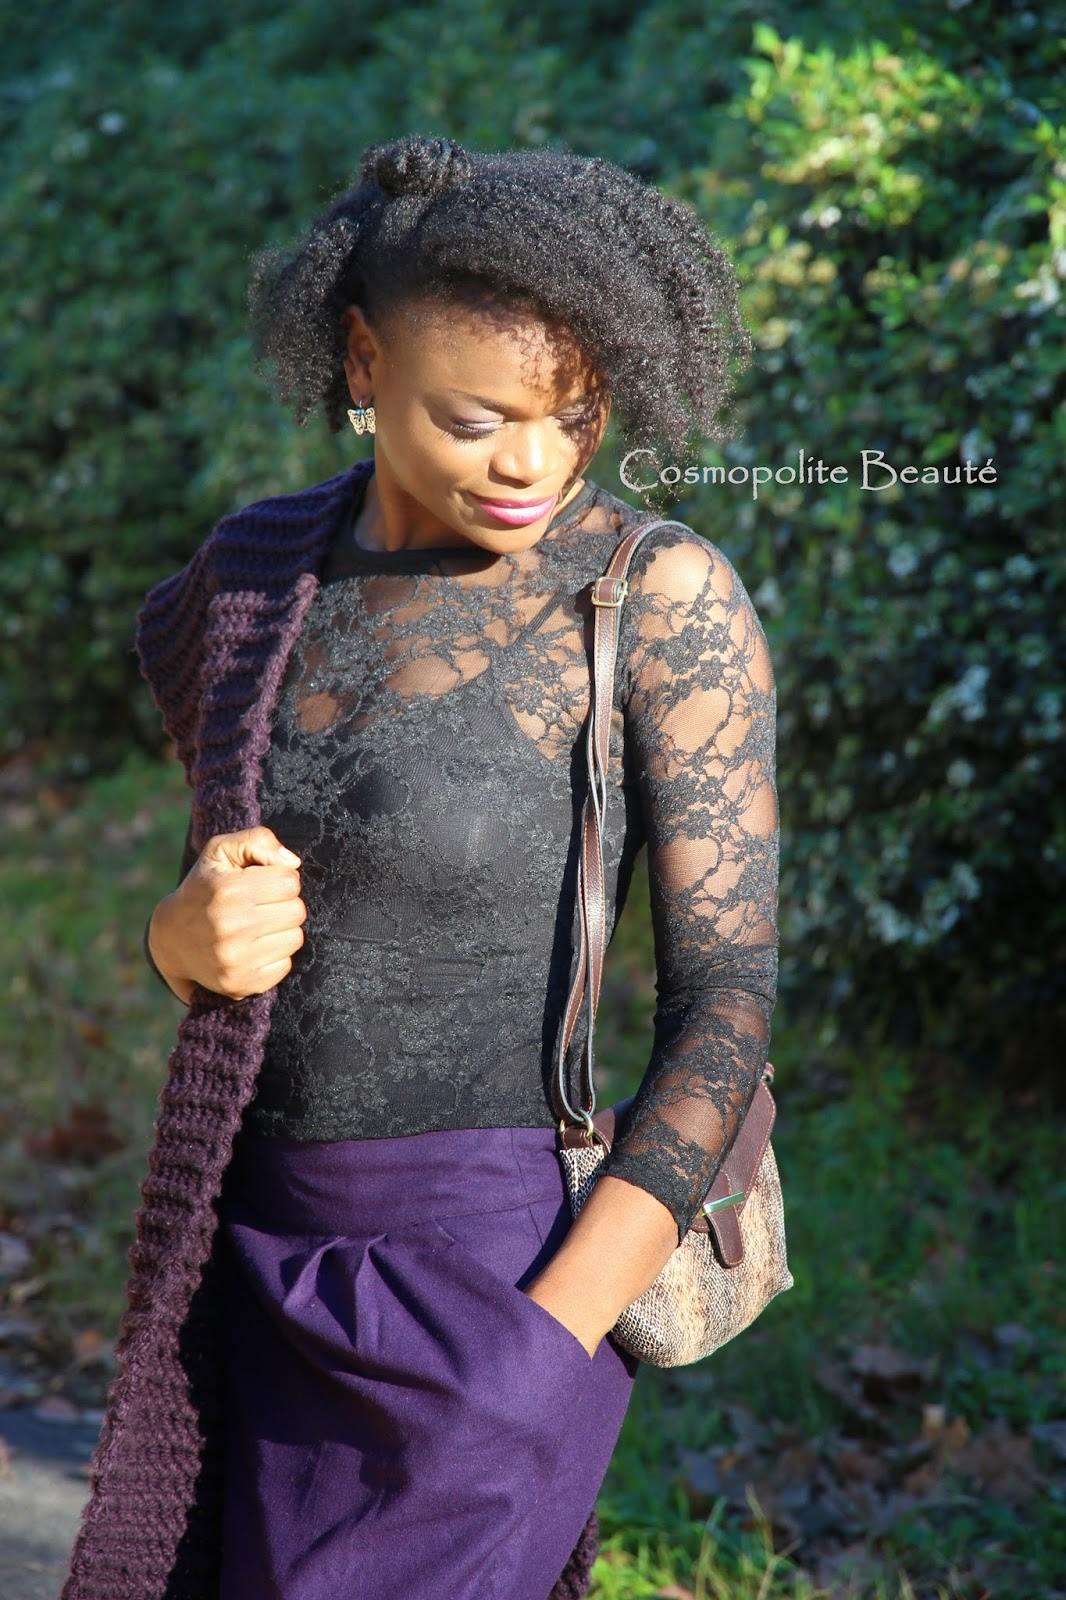 cosmopolitan beauty, dentelle, manteau long, Cosmopolite beaute, lookbook, mode, fashion, look saint Valentin, écharpe, violet, jupe, skirt, scarf, kinky hair, cheveux bouclés, cheveux crepus, nappy